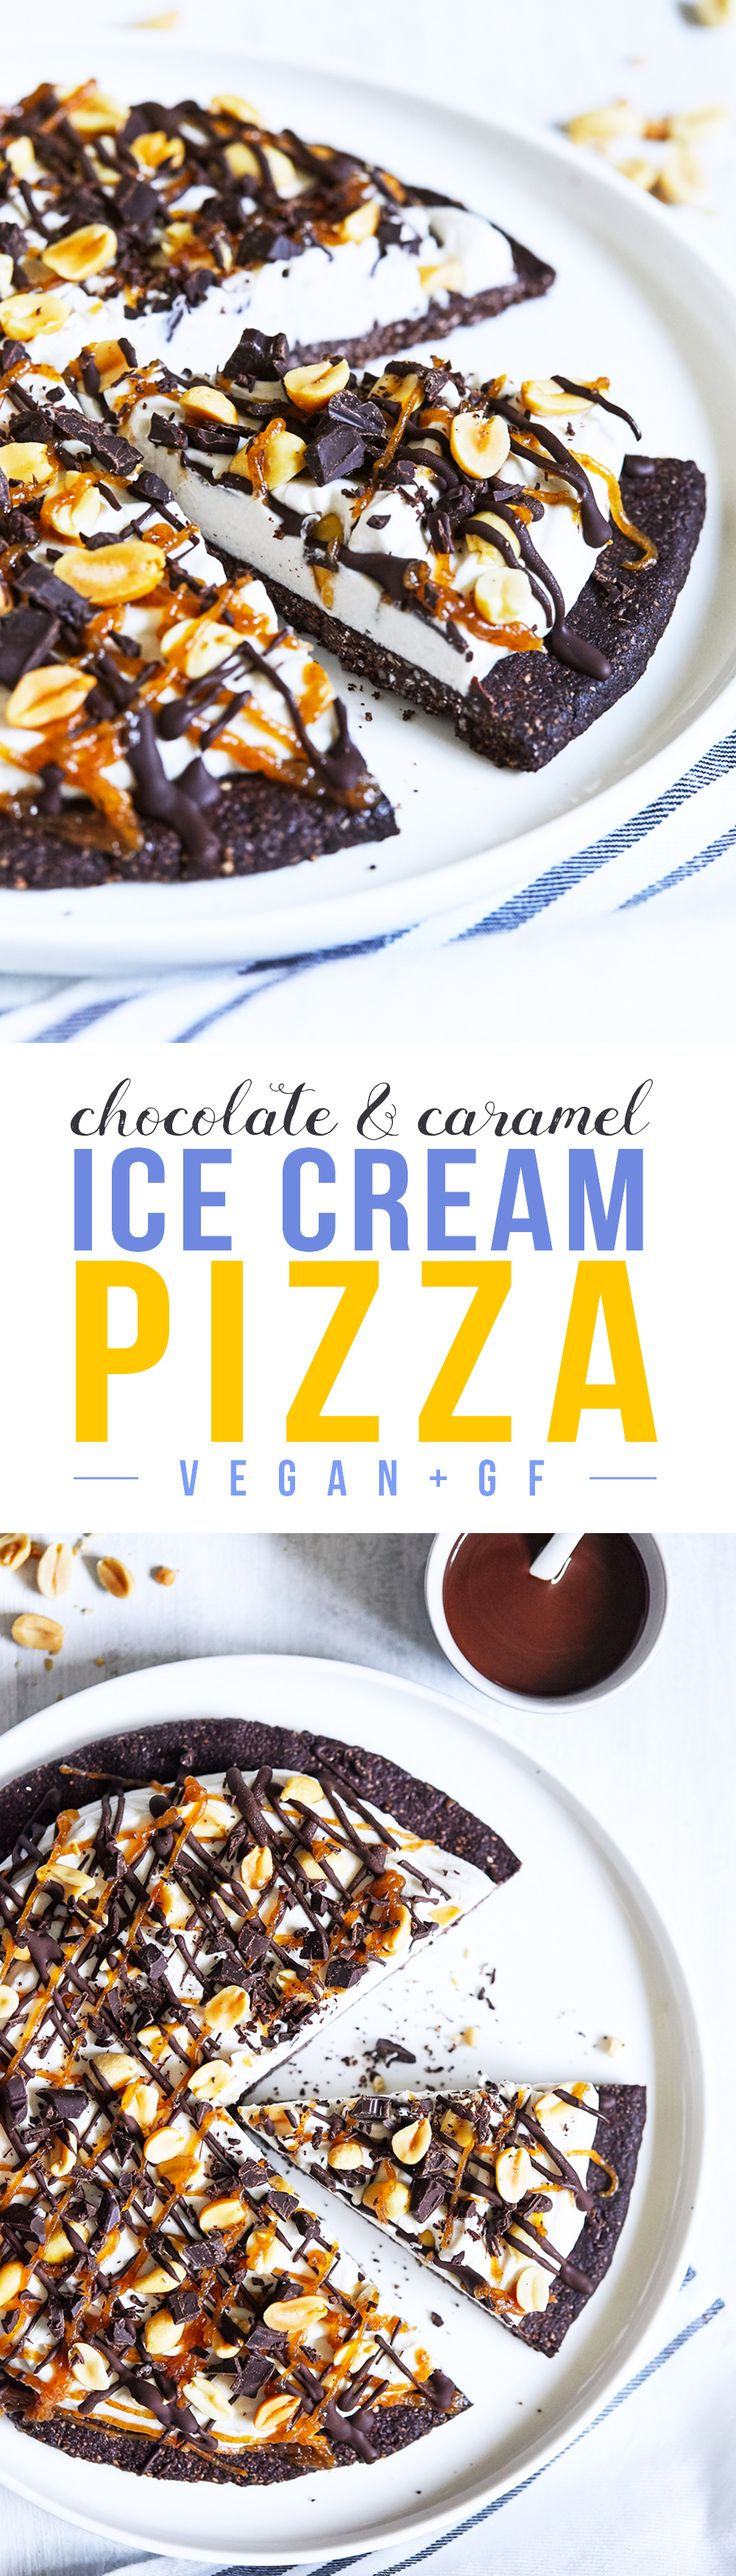 Chocolate and Caramel Ice Cream Pizza! It's everything you love in one dish! | Vegan & Gluten free